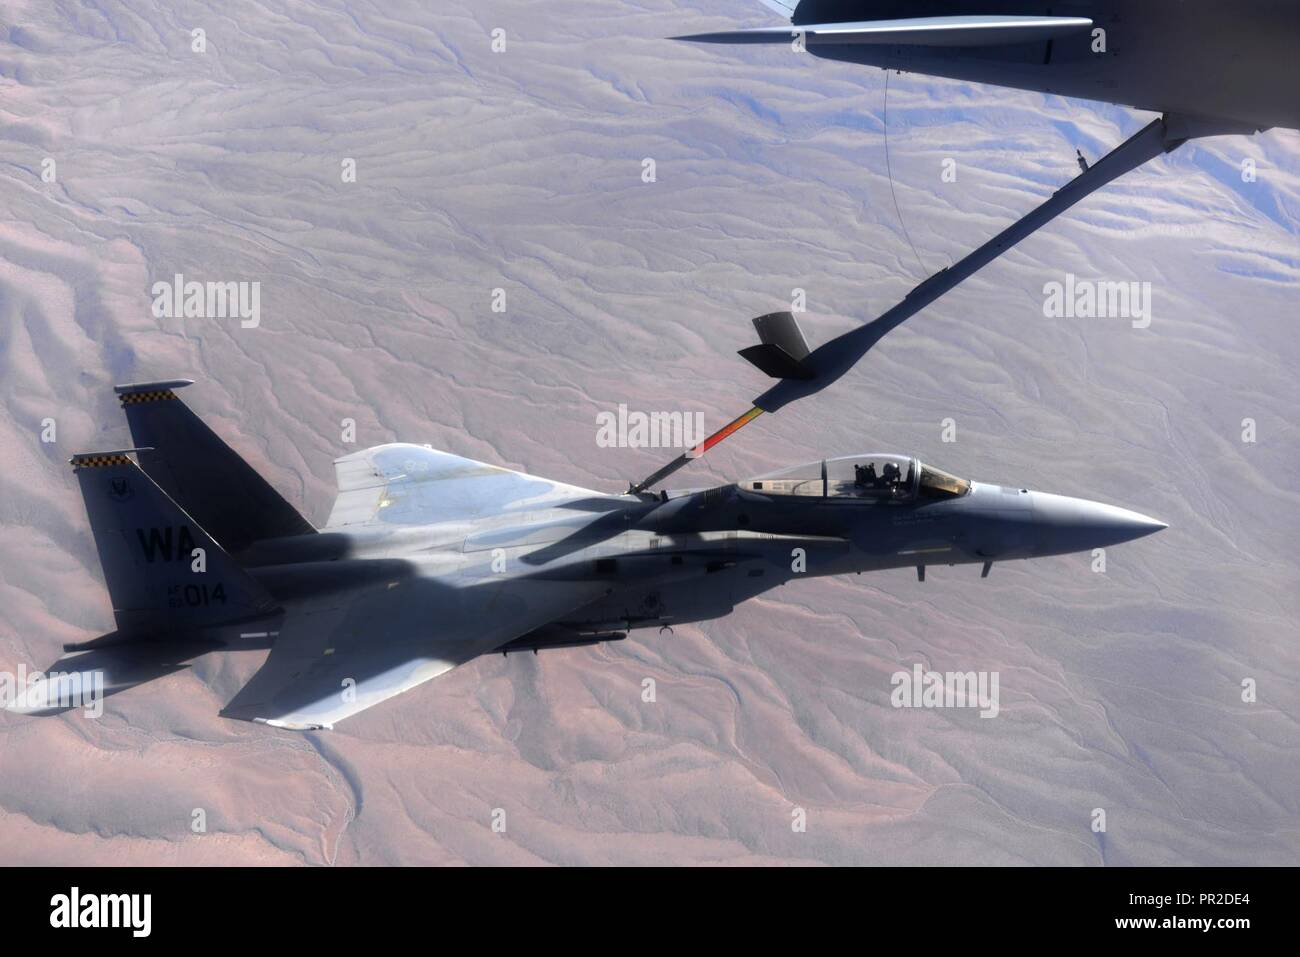 An F-15 fighter jet, assigned to the 433rd Weapons Squadron, at Nellis Air Force Base, Nevada, receives aerial refueling from a KC-135 Stratotanker cargo aircraft assigned to the 509th Weapons Squadron, at Fairchild Air Force Base, Washington, cargo aircraft assigned to the 509th Weapons Squadron, Fairchild Air Force Base, Washington, over the Nevada Test and Training Range July 10, 2017. The United States Air Force Weapons School teaches graduate-level instructor courses that provide the world's most advanced training in weapons and tactics employment to officers of the combat air forces and  - Stock Image